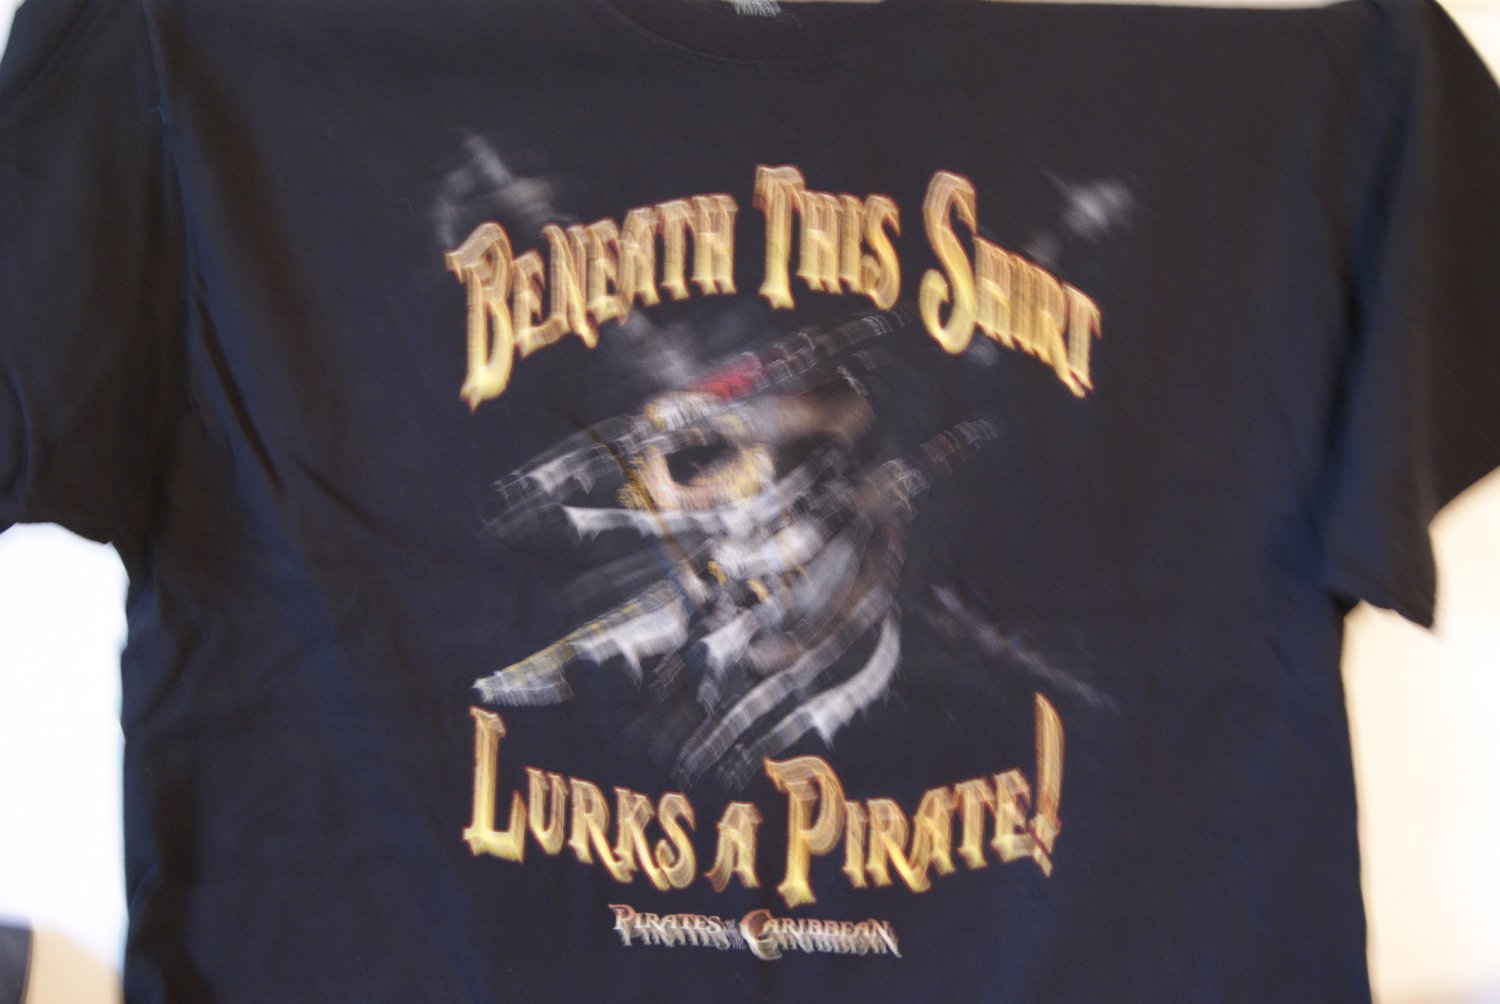 Pirates of the Caribbean tee